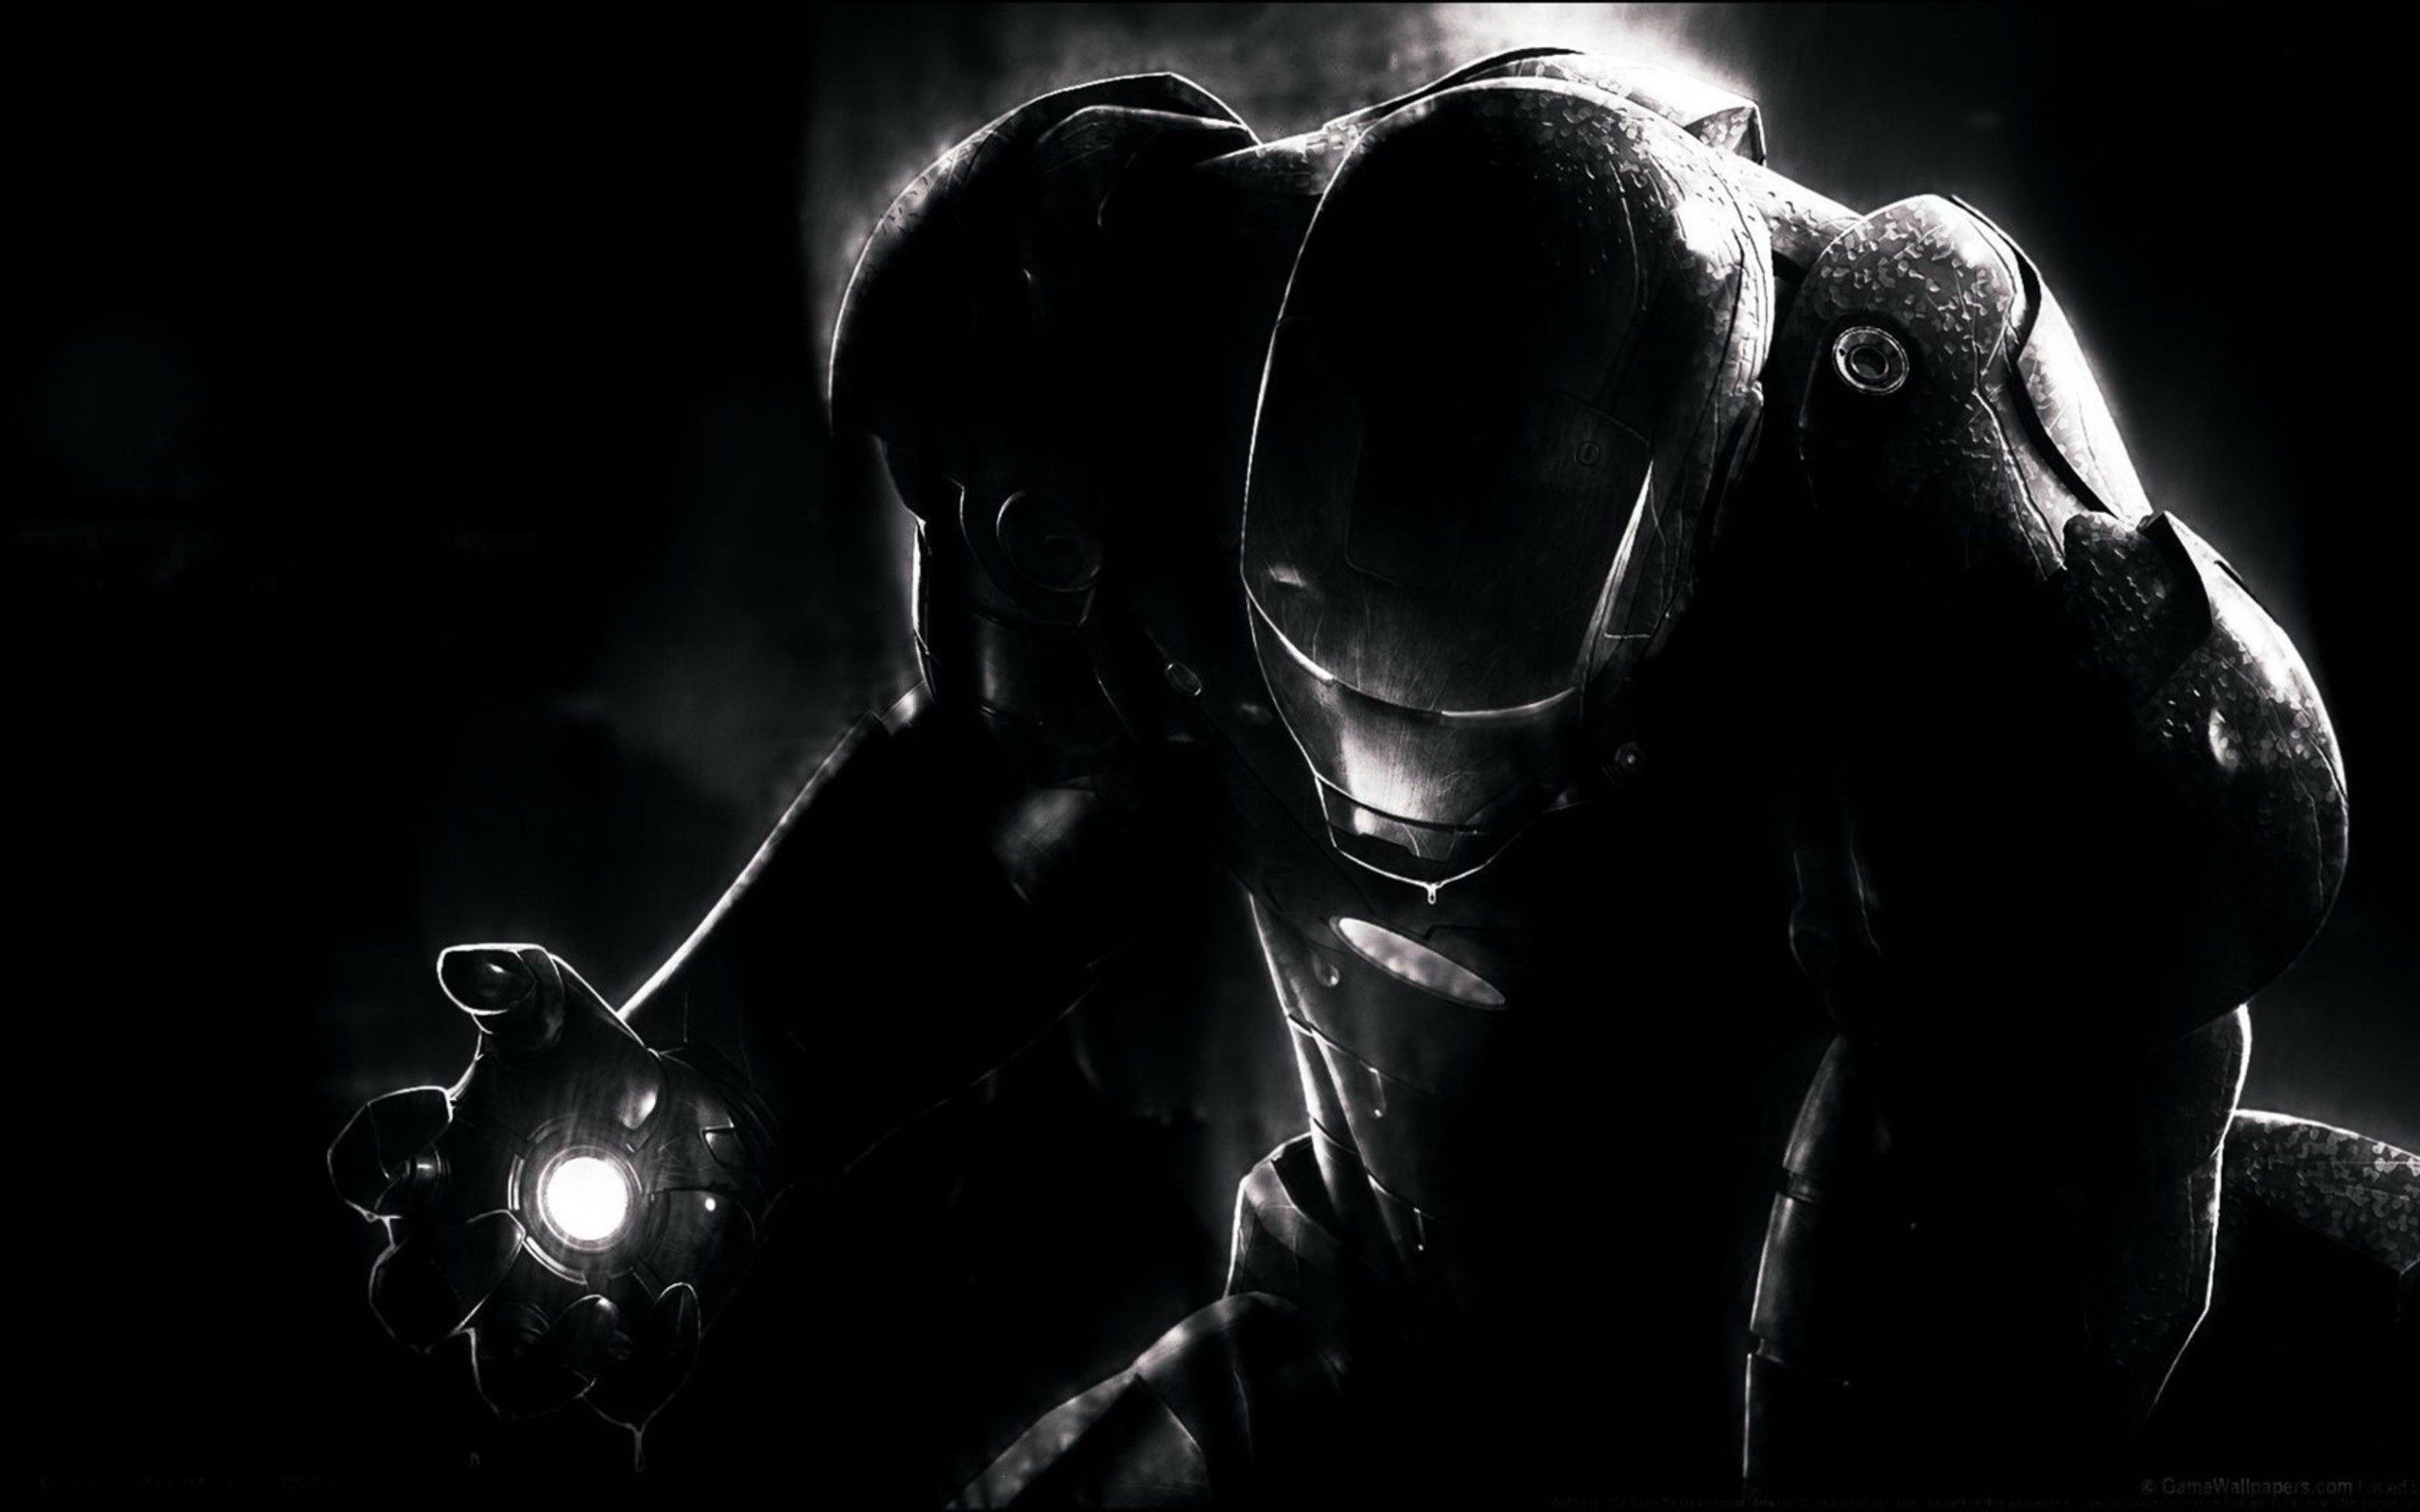 Iron Man Black Desktop Wallpapers Top Free Iron Man Black